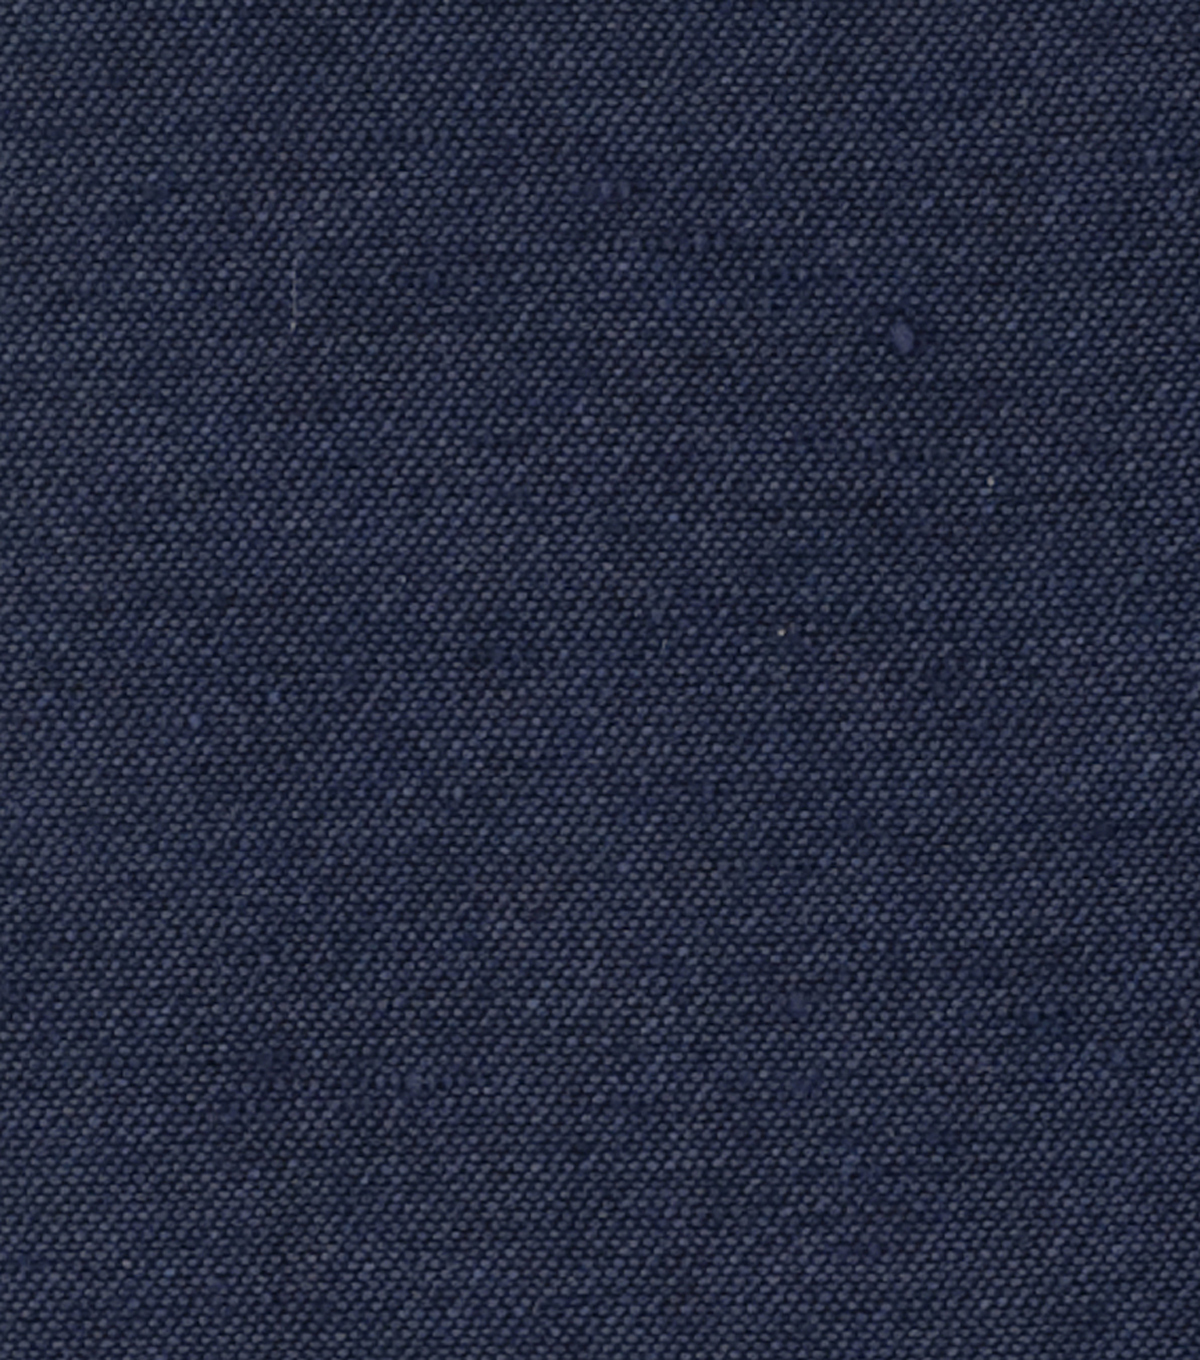 Antique Satin Indigo Swatch